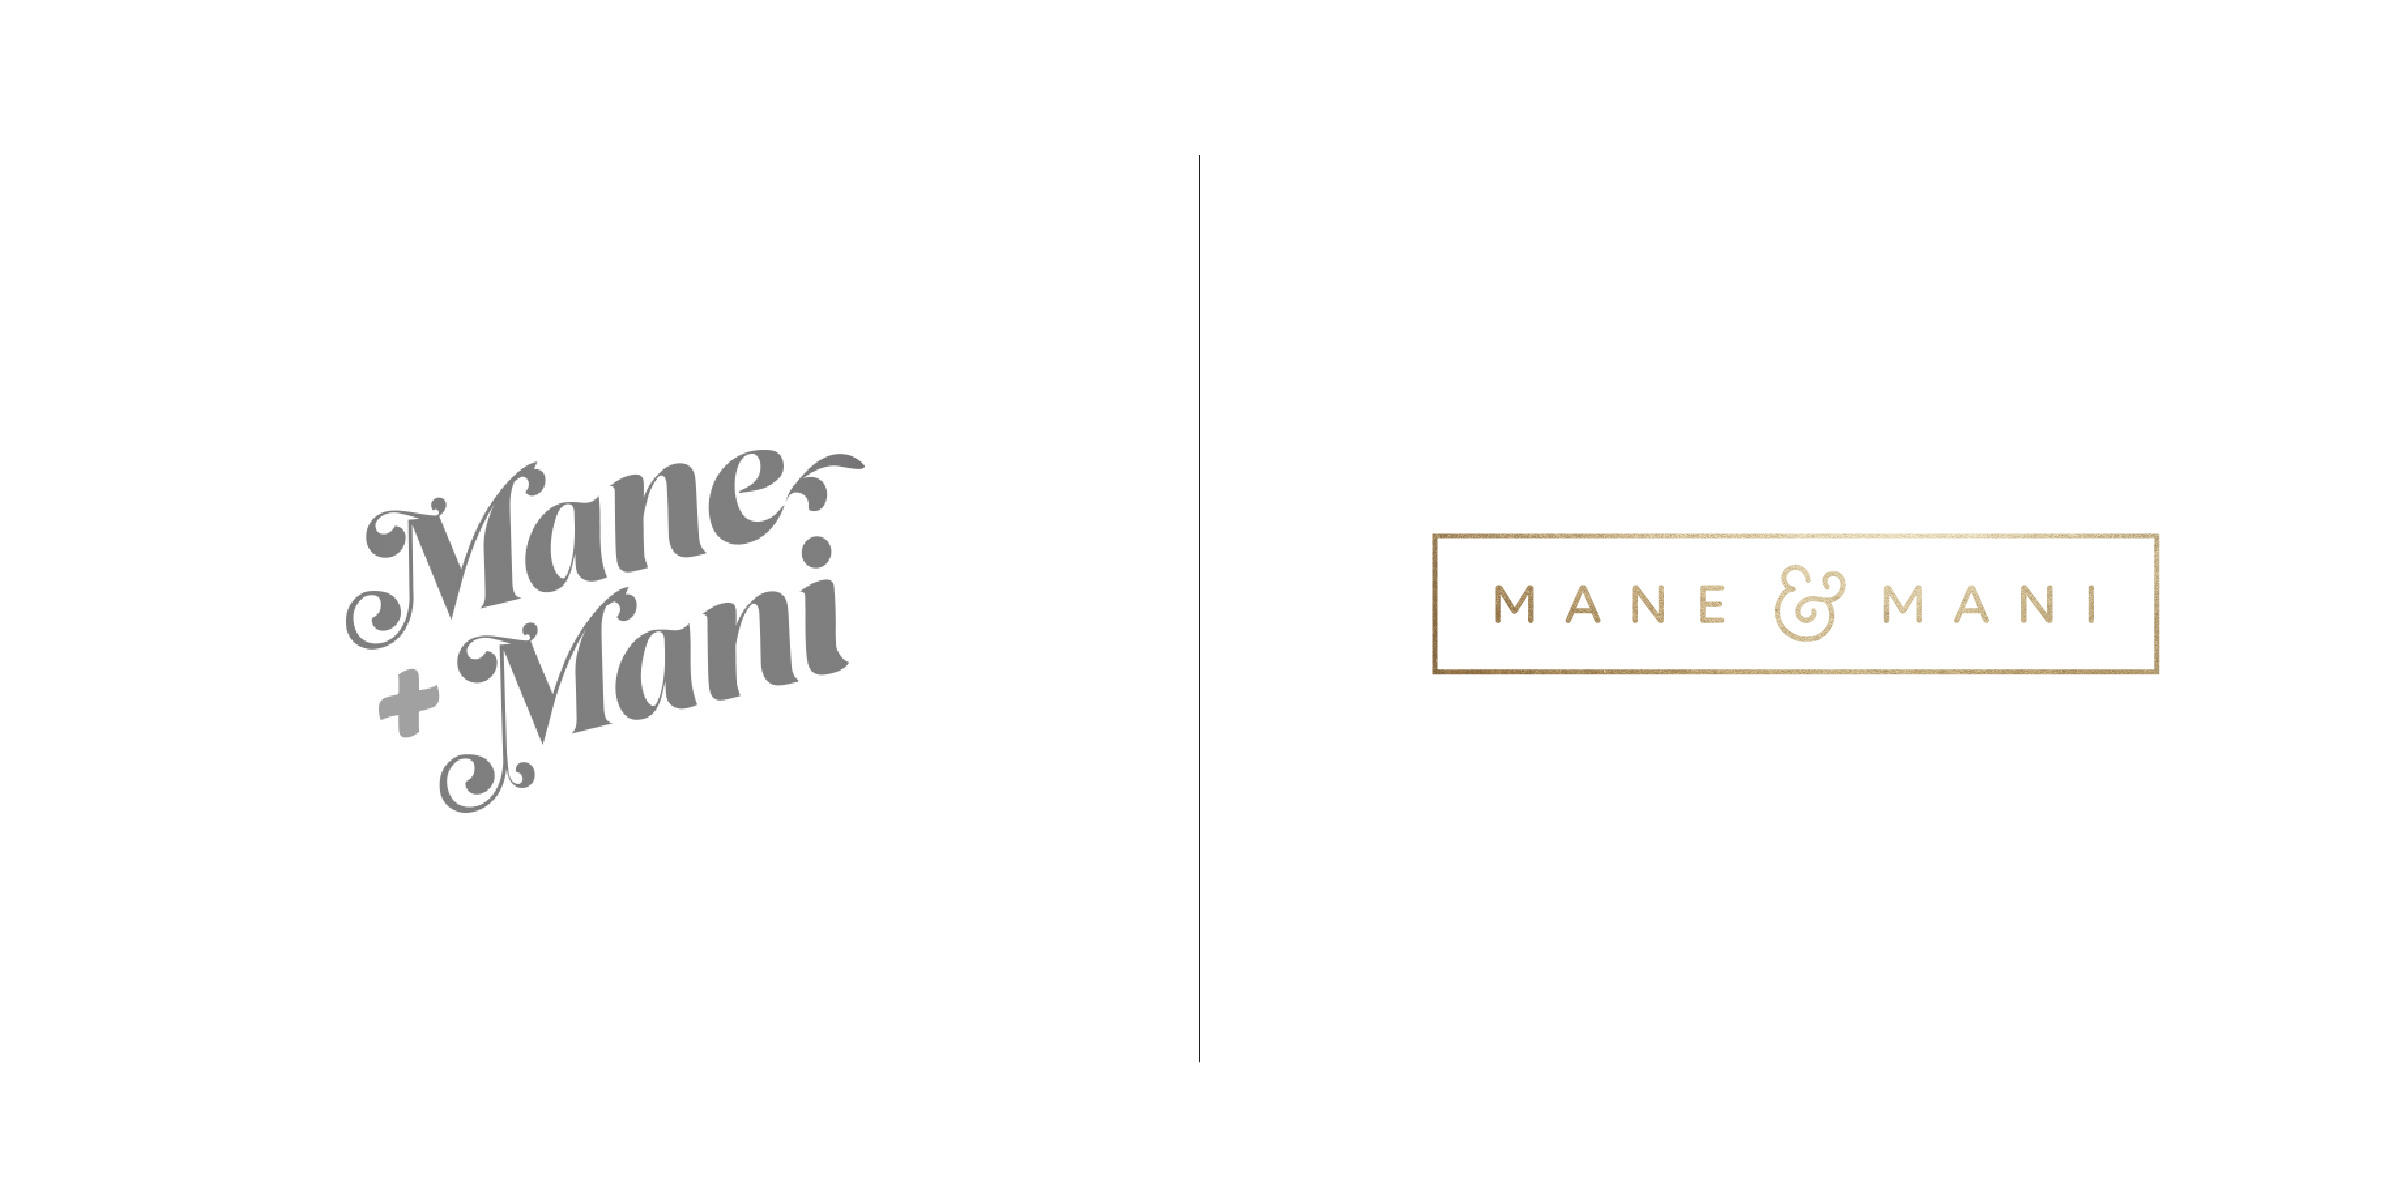 The client —   Mane & Mani is a boutique style bar with 4 locations (and growing) in and around the Boston area.  The goal — We jumped at the opportunity to give this logo a much needed makeover! Transforming it from an inexpensive, dated, 70's style into a cleaned up, modern design that is feminine, approachable and accurately reflects the quality of service they provide.